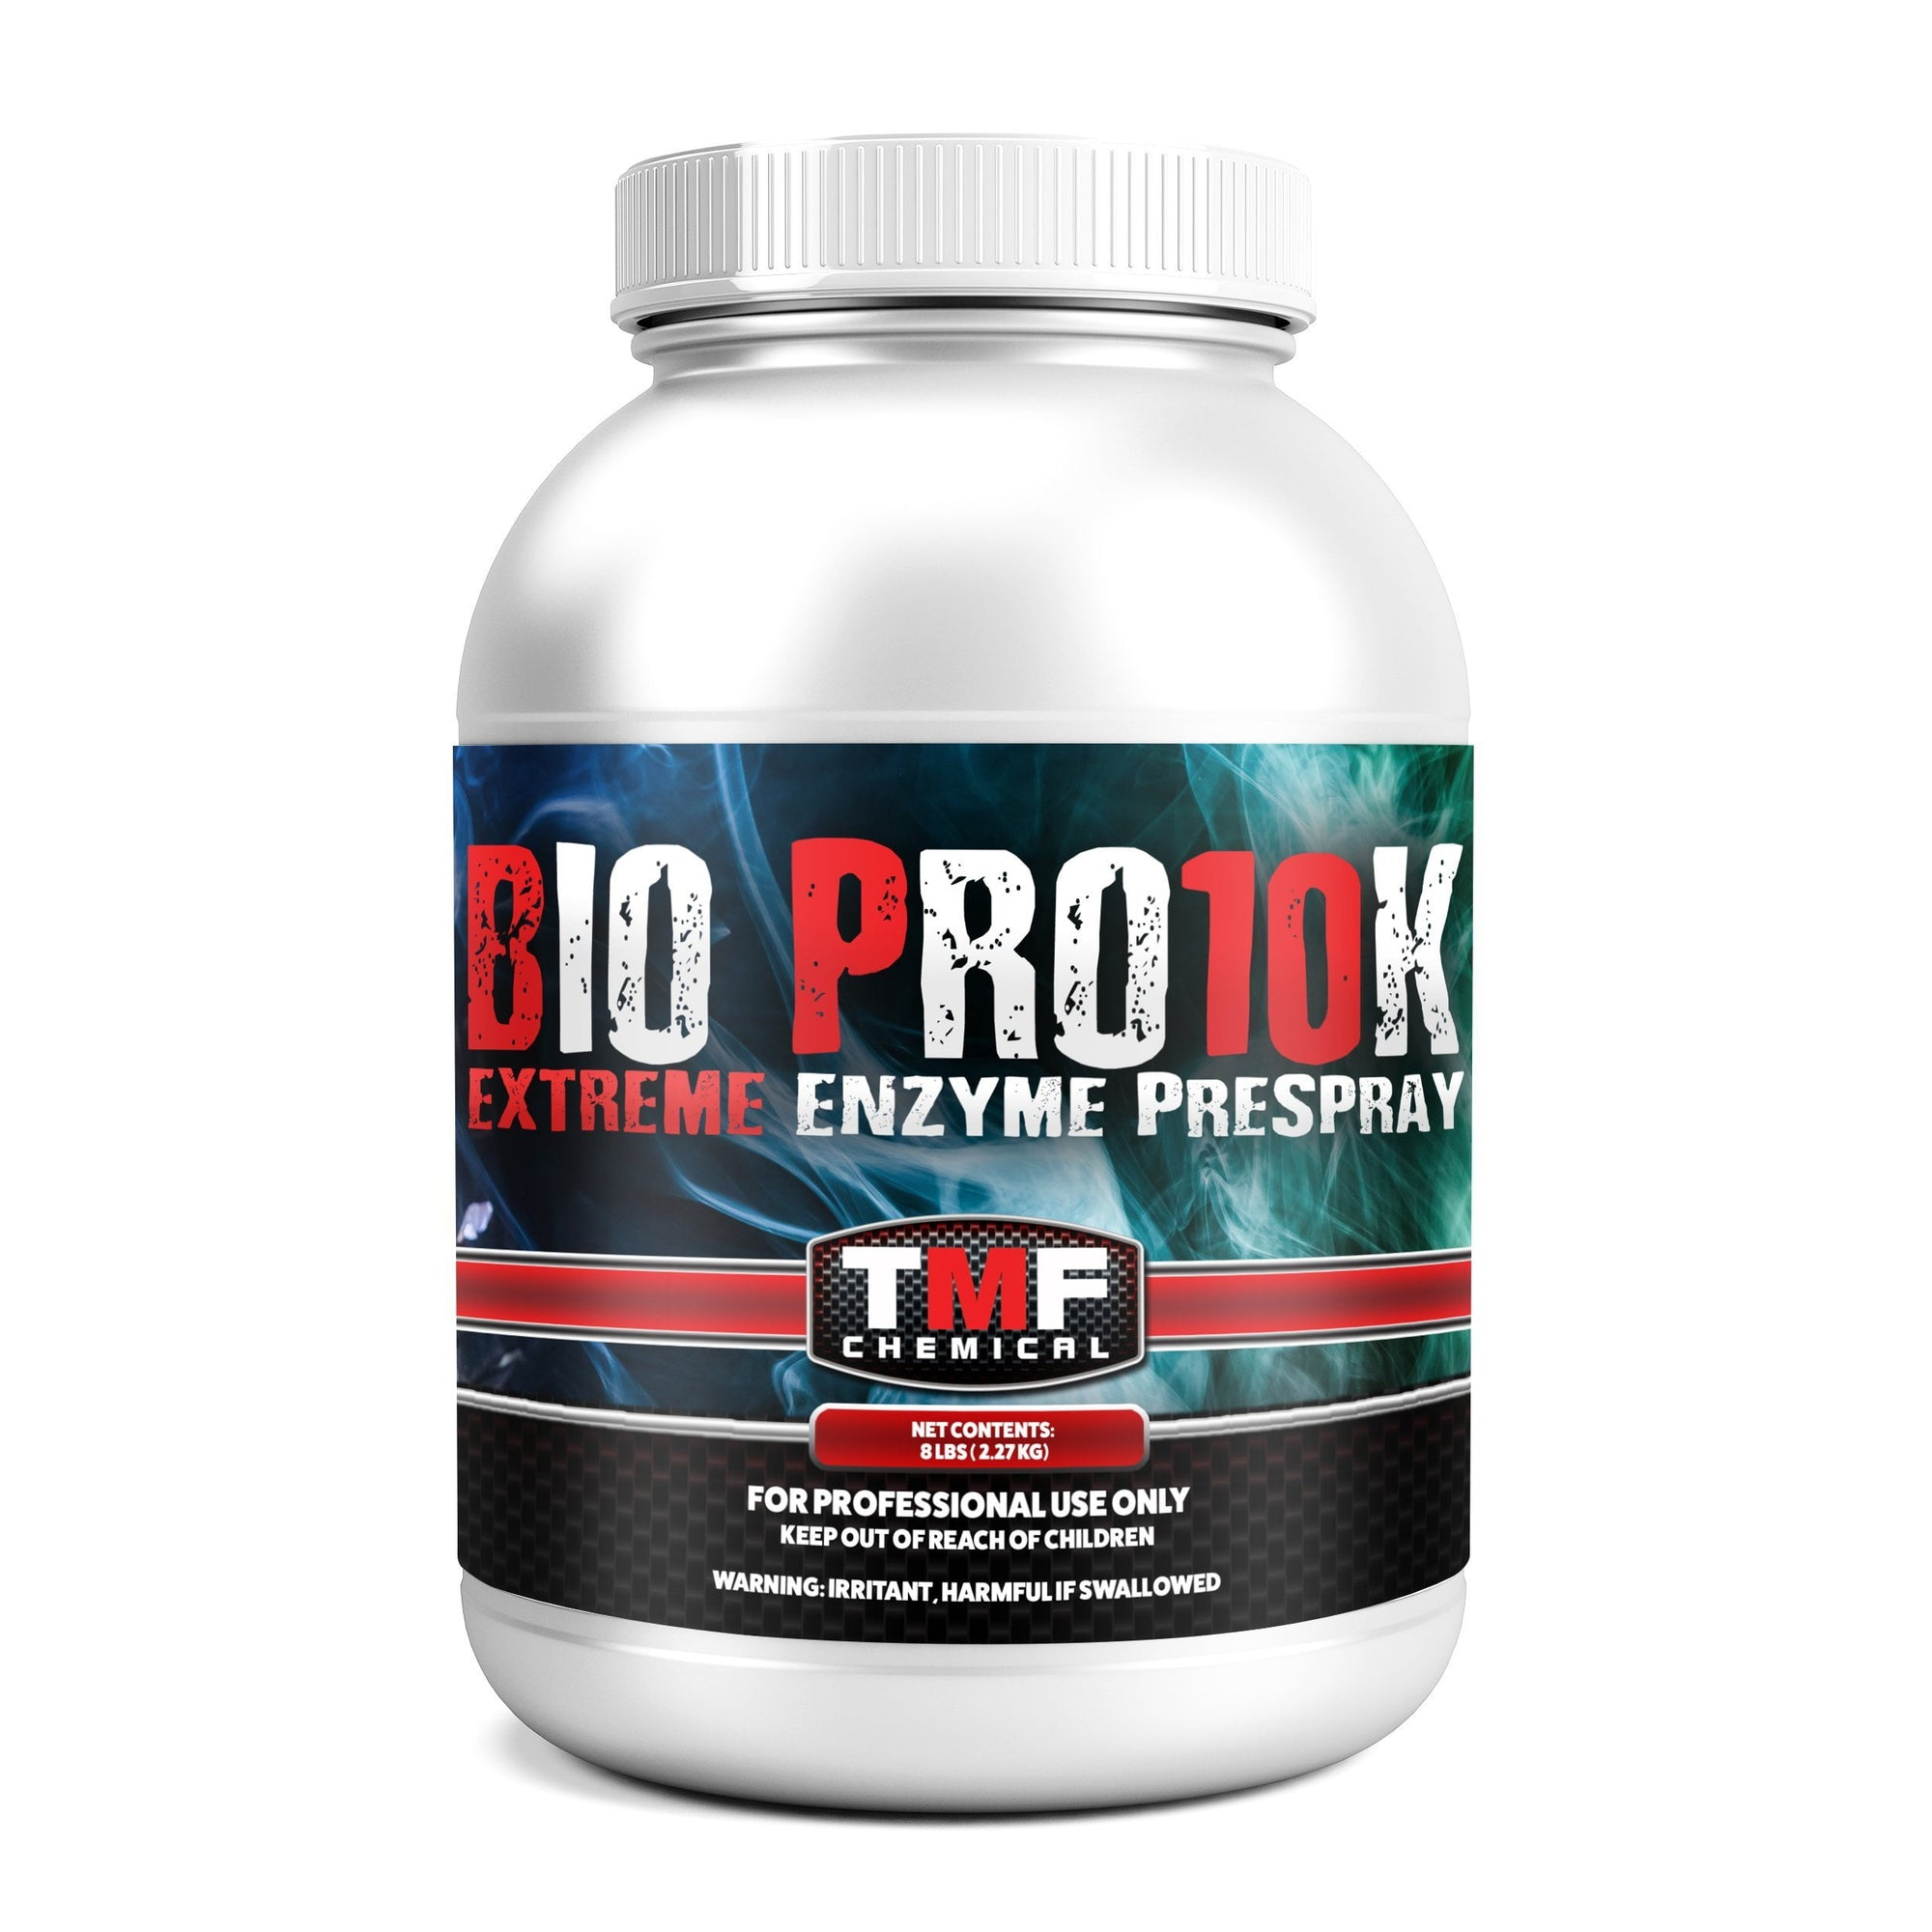 BIOPRO 10K EnZYME PreSPRAY - TMF Store: Carpet Cleaning Equipment & Chemicals from TruckMountForums